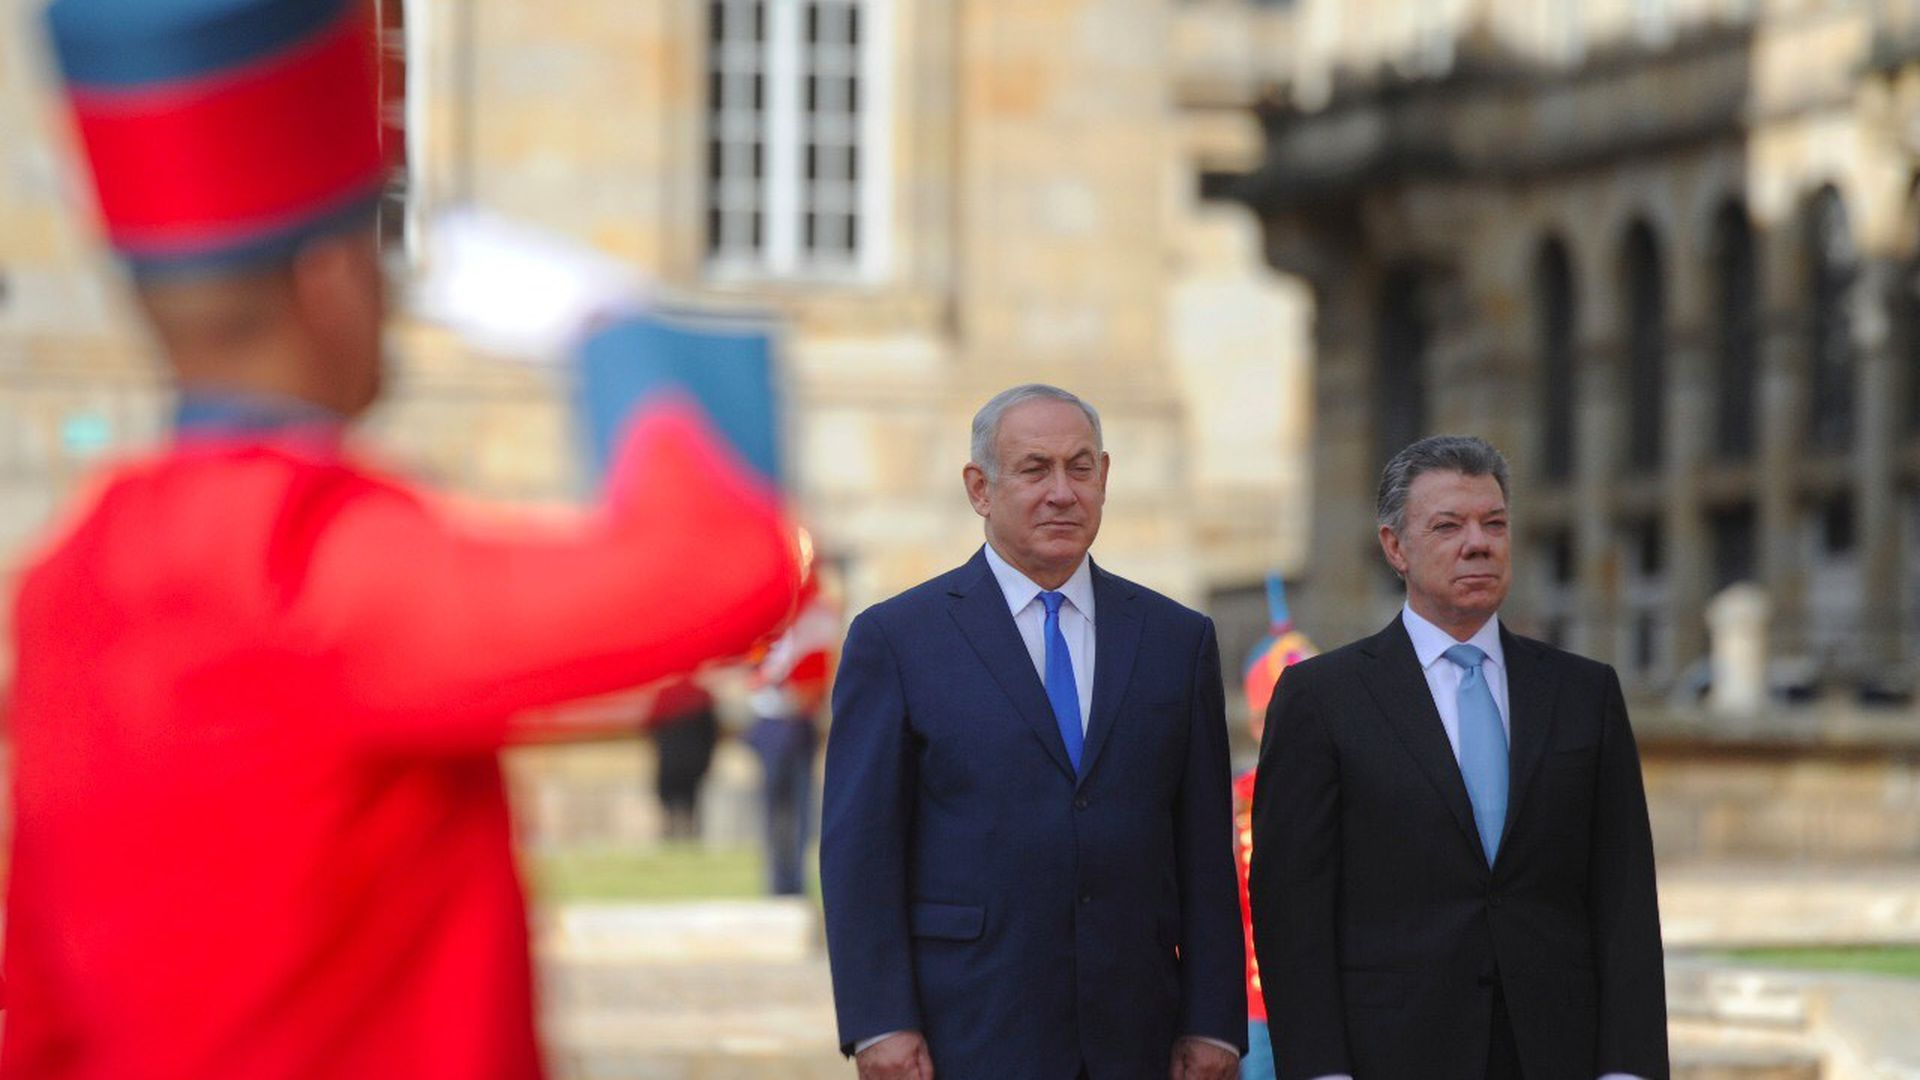 Colombia recognizes Palestine, sparking fury in Israel